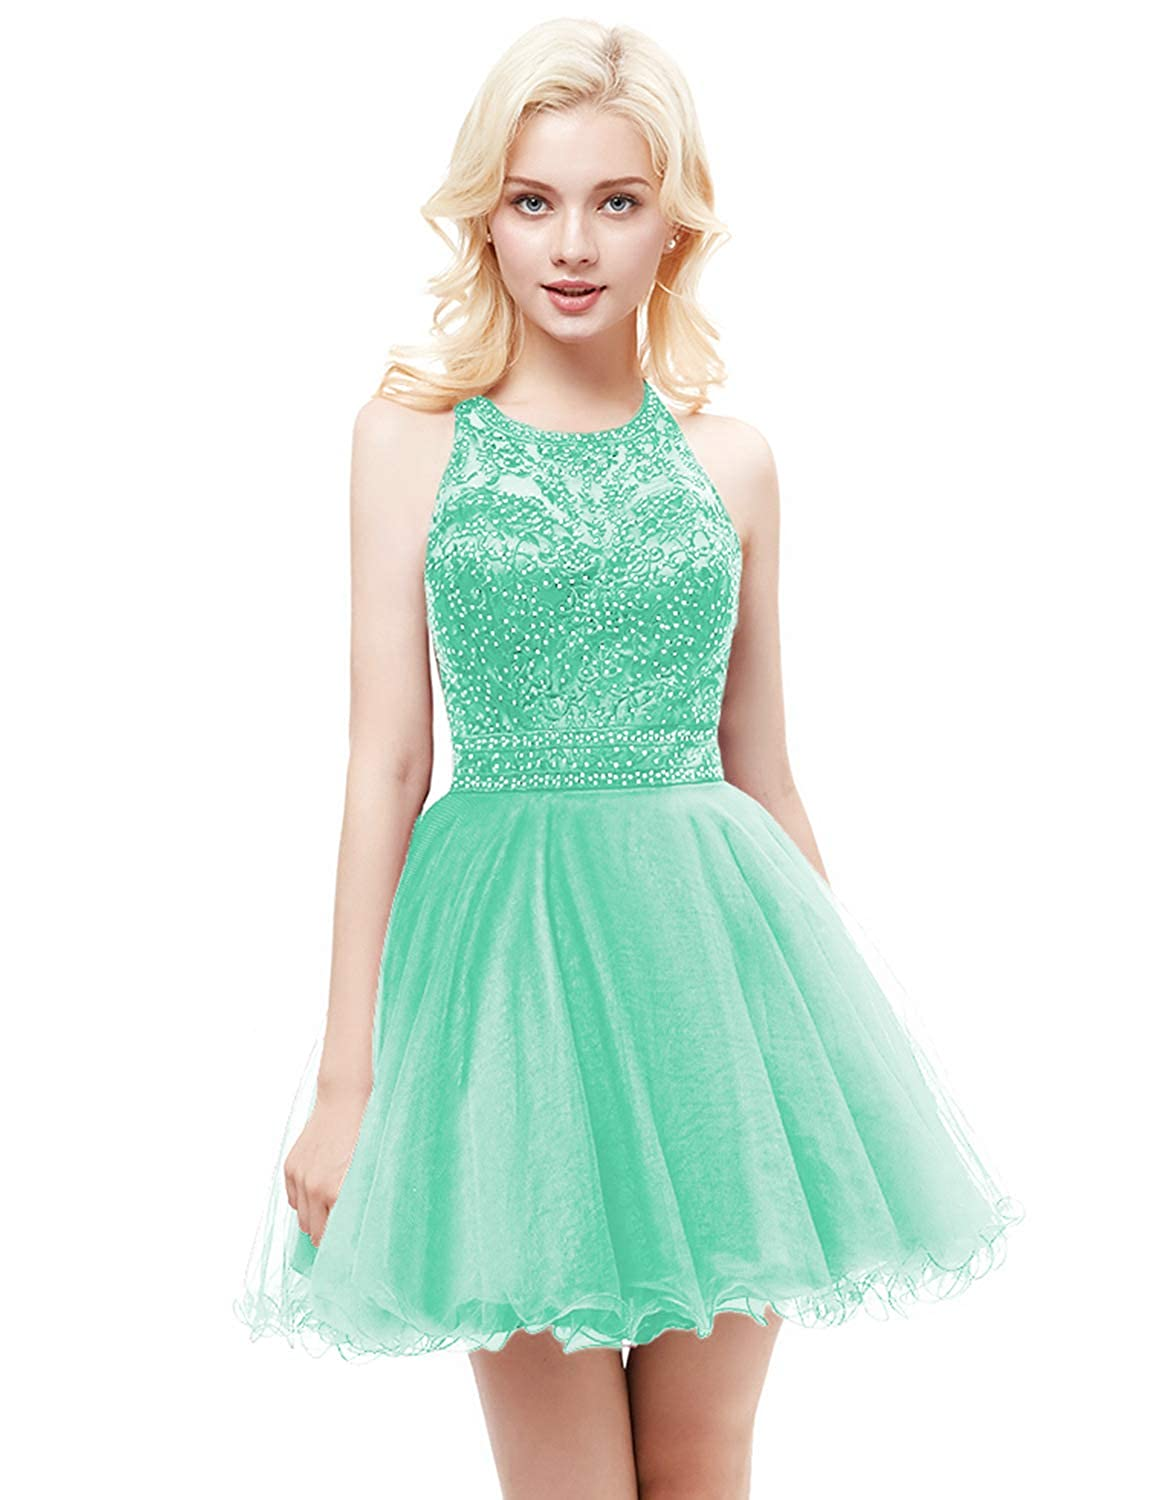 Mint Yiweir Women's Tulle Pearls Homecoming Dresses 2018 Short Formal Prom Gown H1111